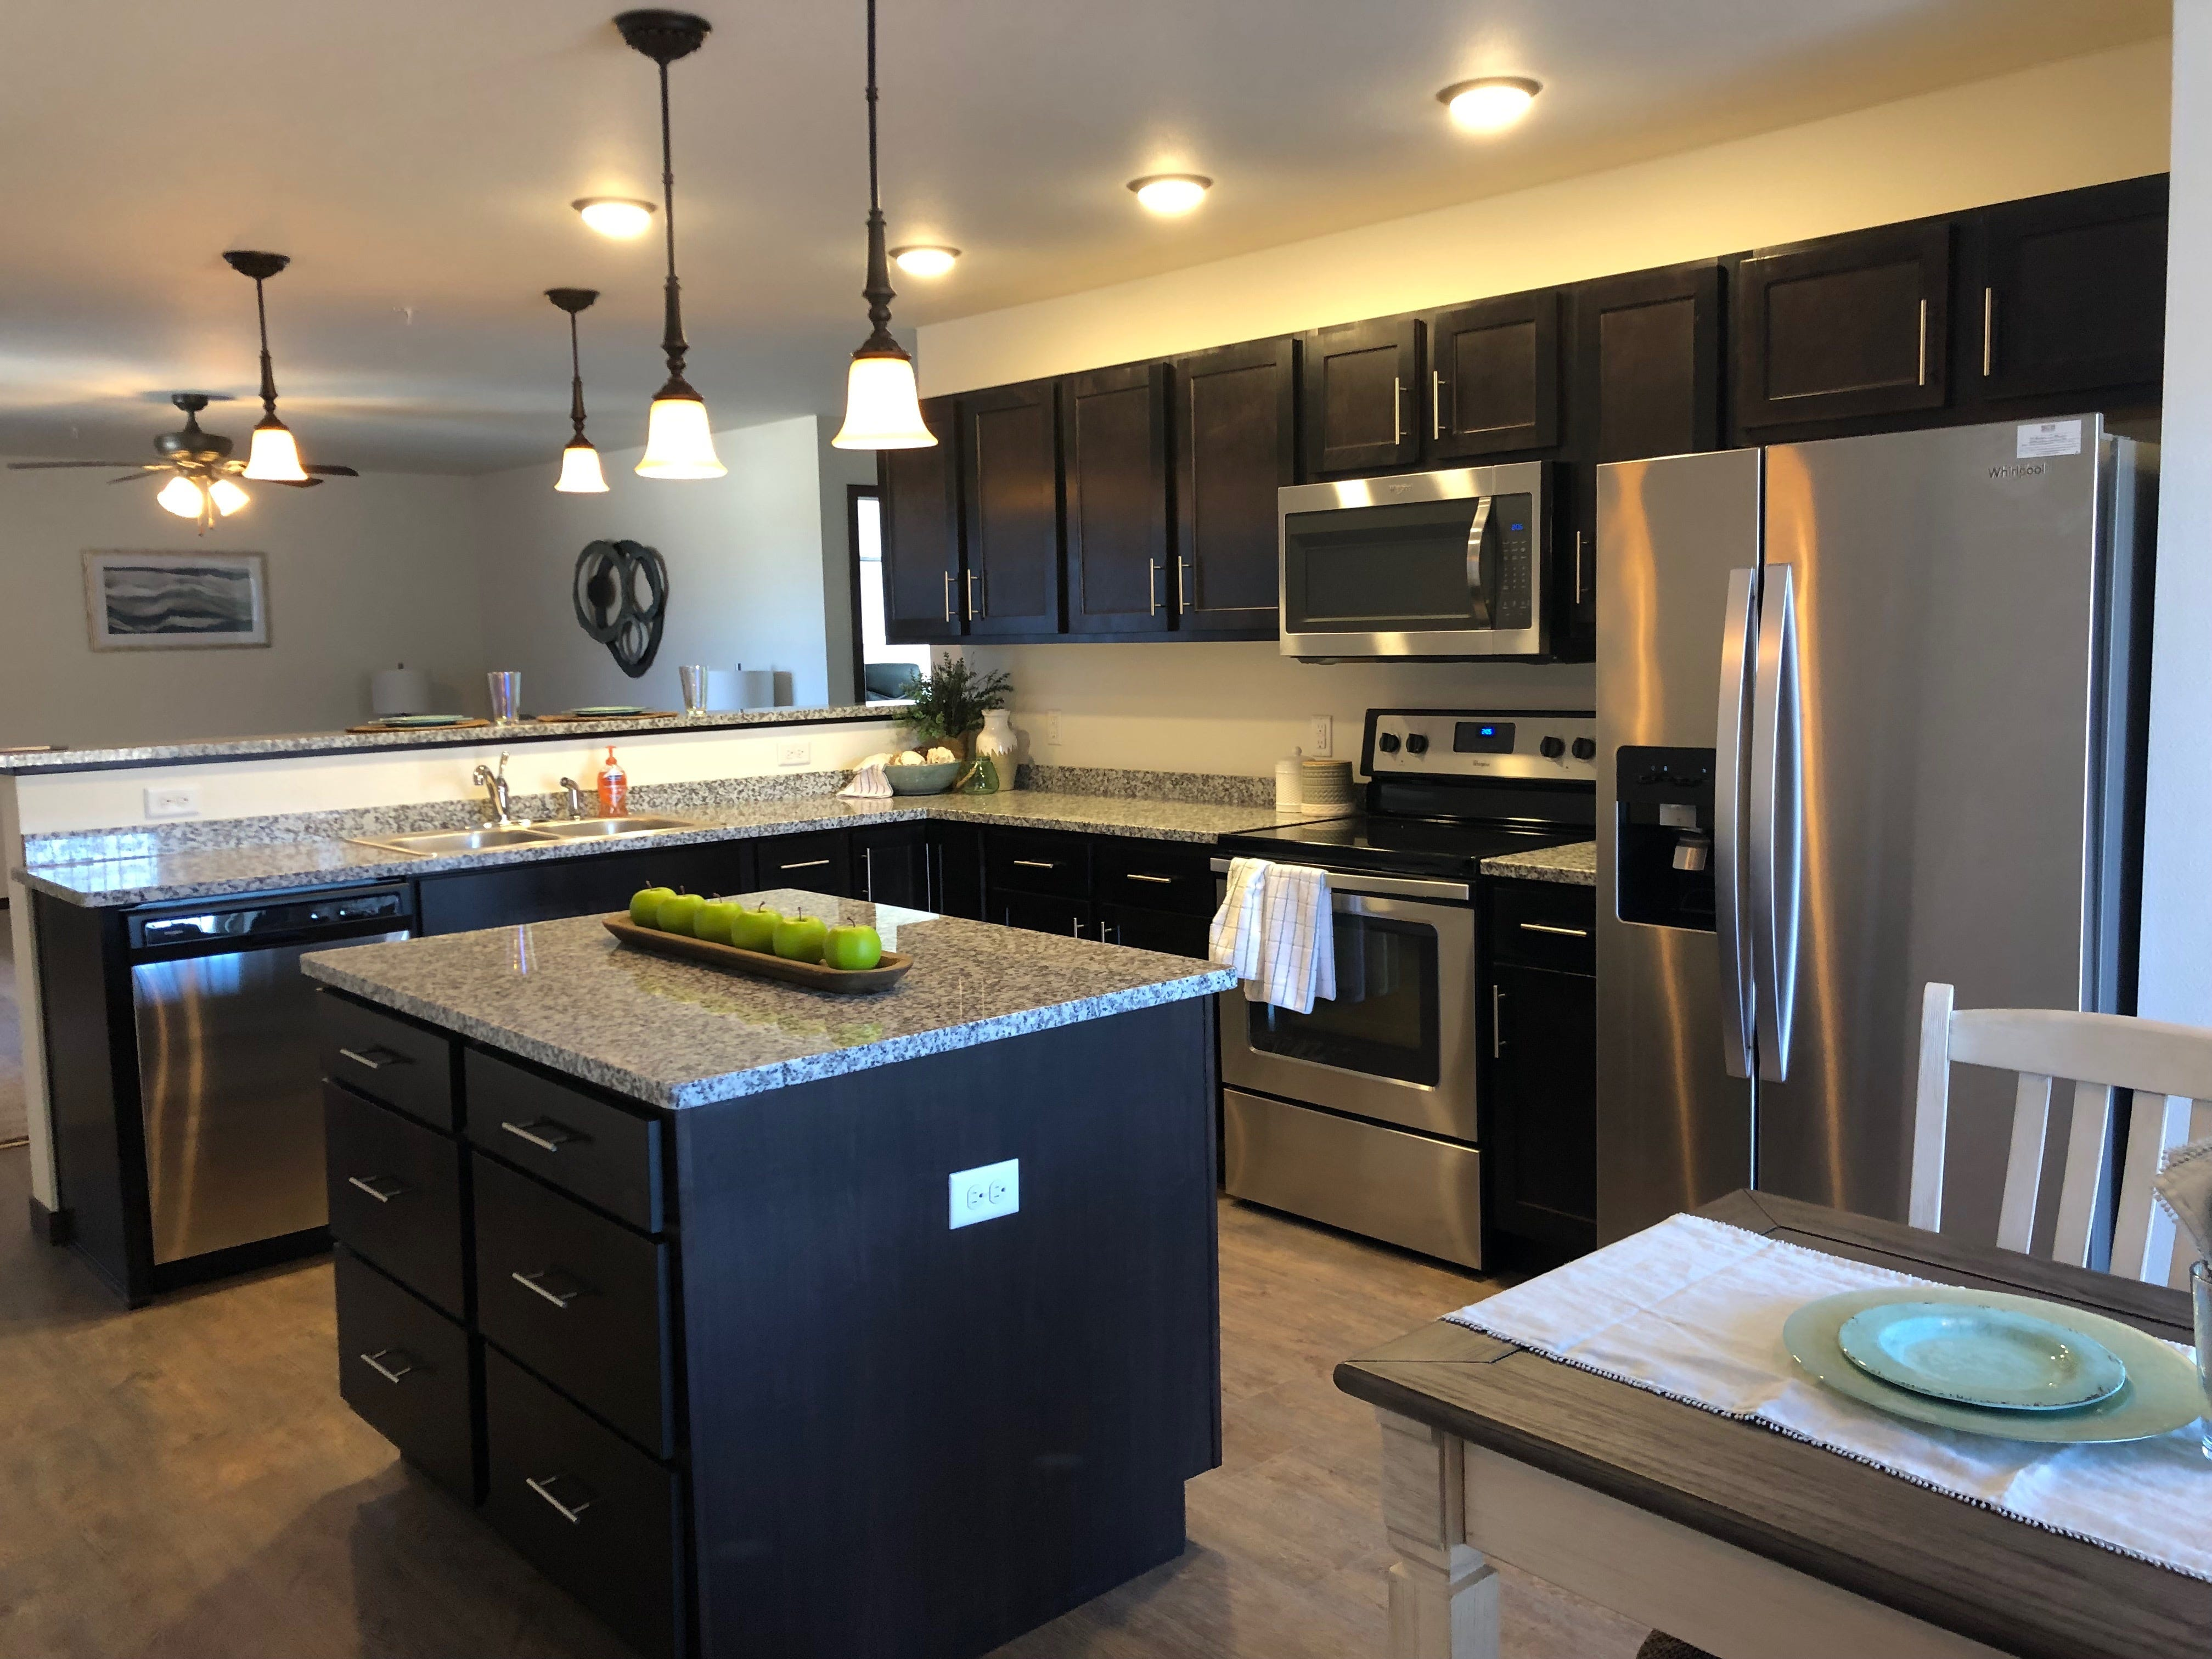 The kitchen in an apartment at the Westwood Estates. Because the rentals are higher-end, they all have granite counter tops and stainless steel appliances.